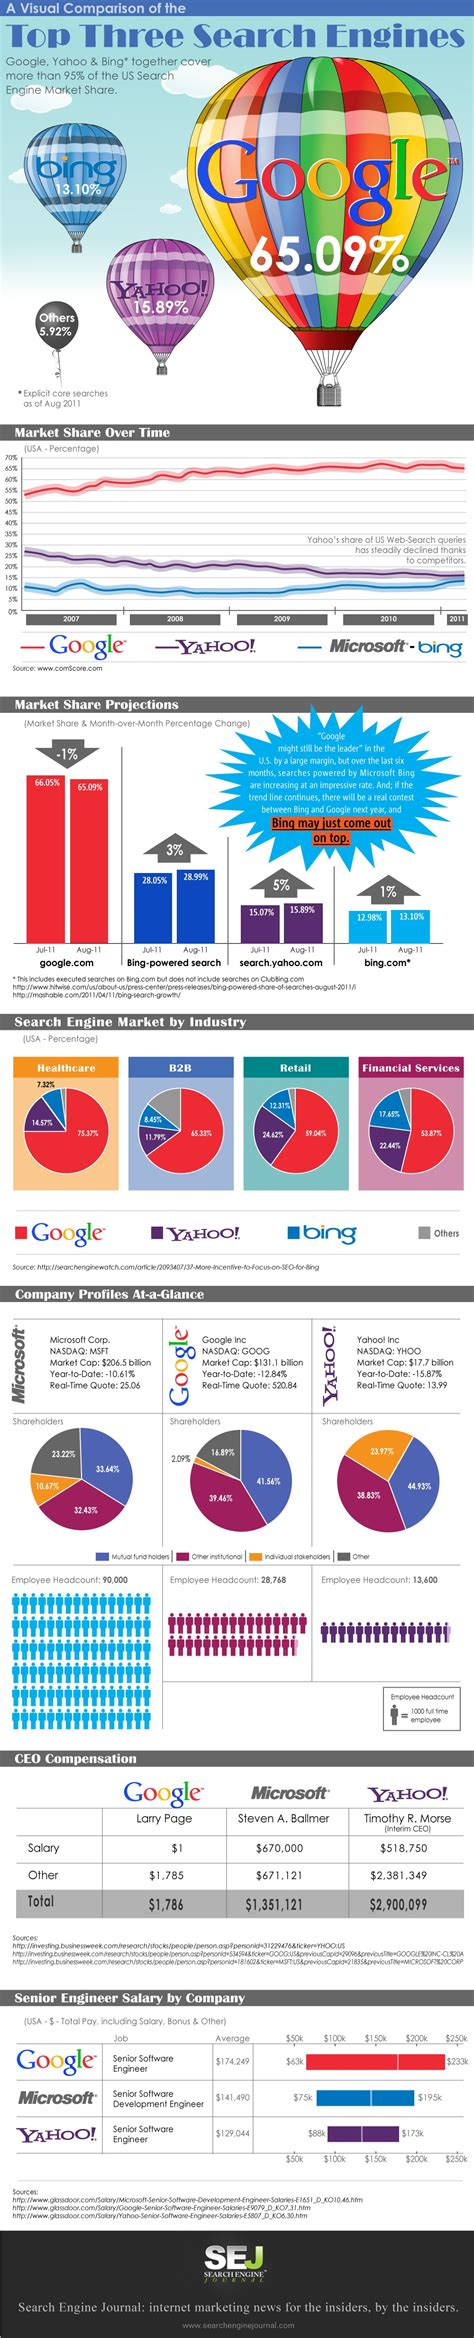 Top Search Engines For Comparison Of The Top Three Search Engines Yahoo